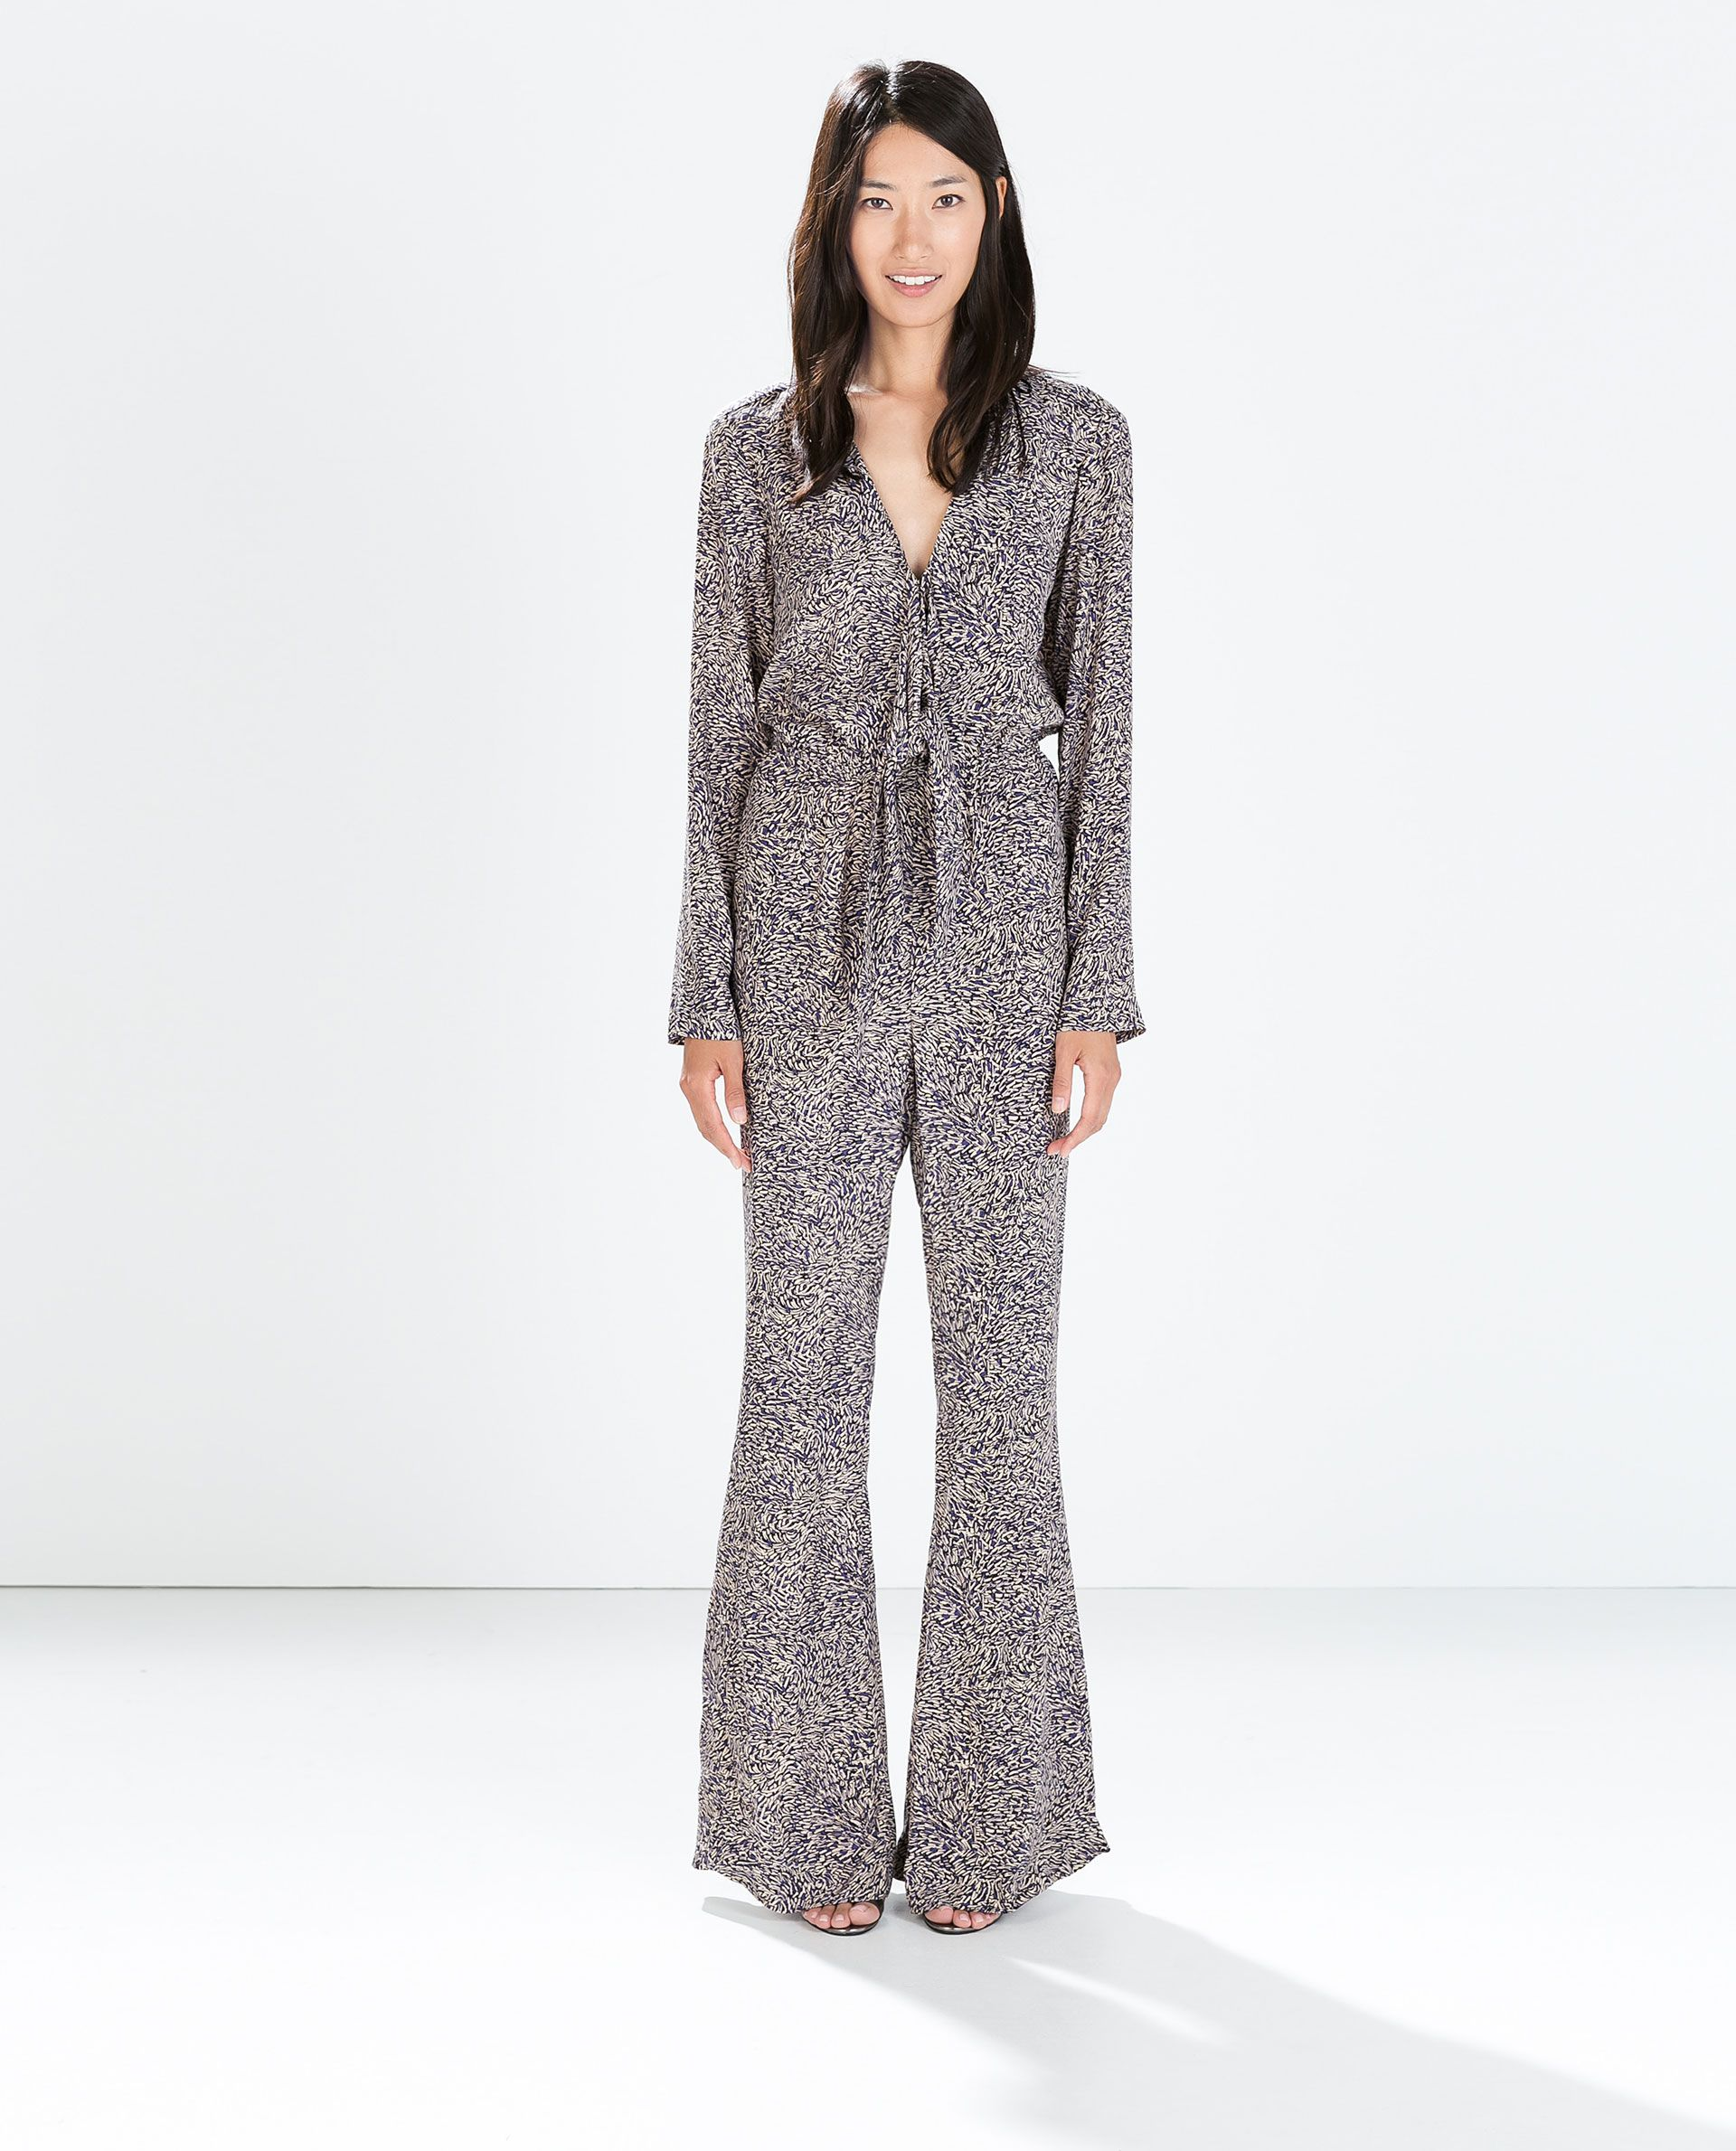 LONG - SLEEVED BELL - BOTTOM JUMPSUIT - Jumpsuits - WOMAN | ZARA ...